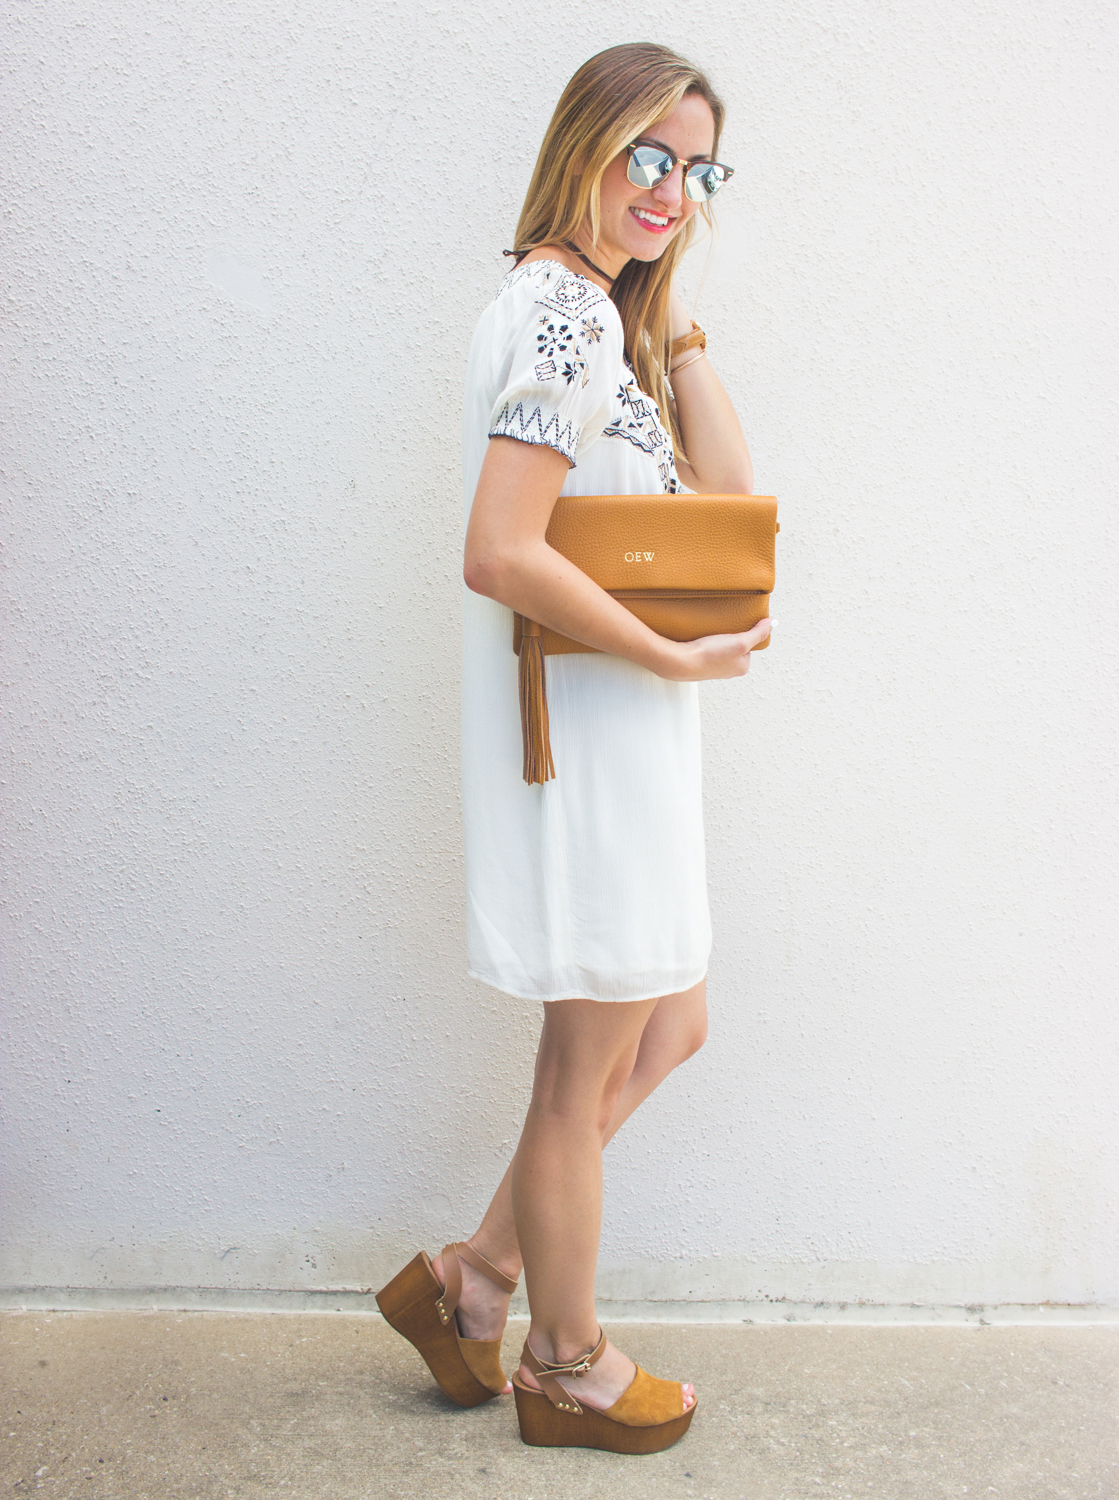 livvyland-blog-olivia-watson-austin-texas-fashion-blogger-abercrombie-and-fitch-embroidered-off-shoulder-dress-seychelles-platform-wedges-boho-outfit-summer-outfit-11